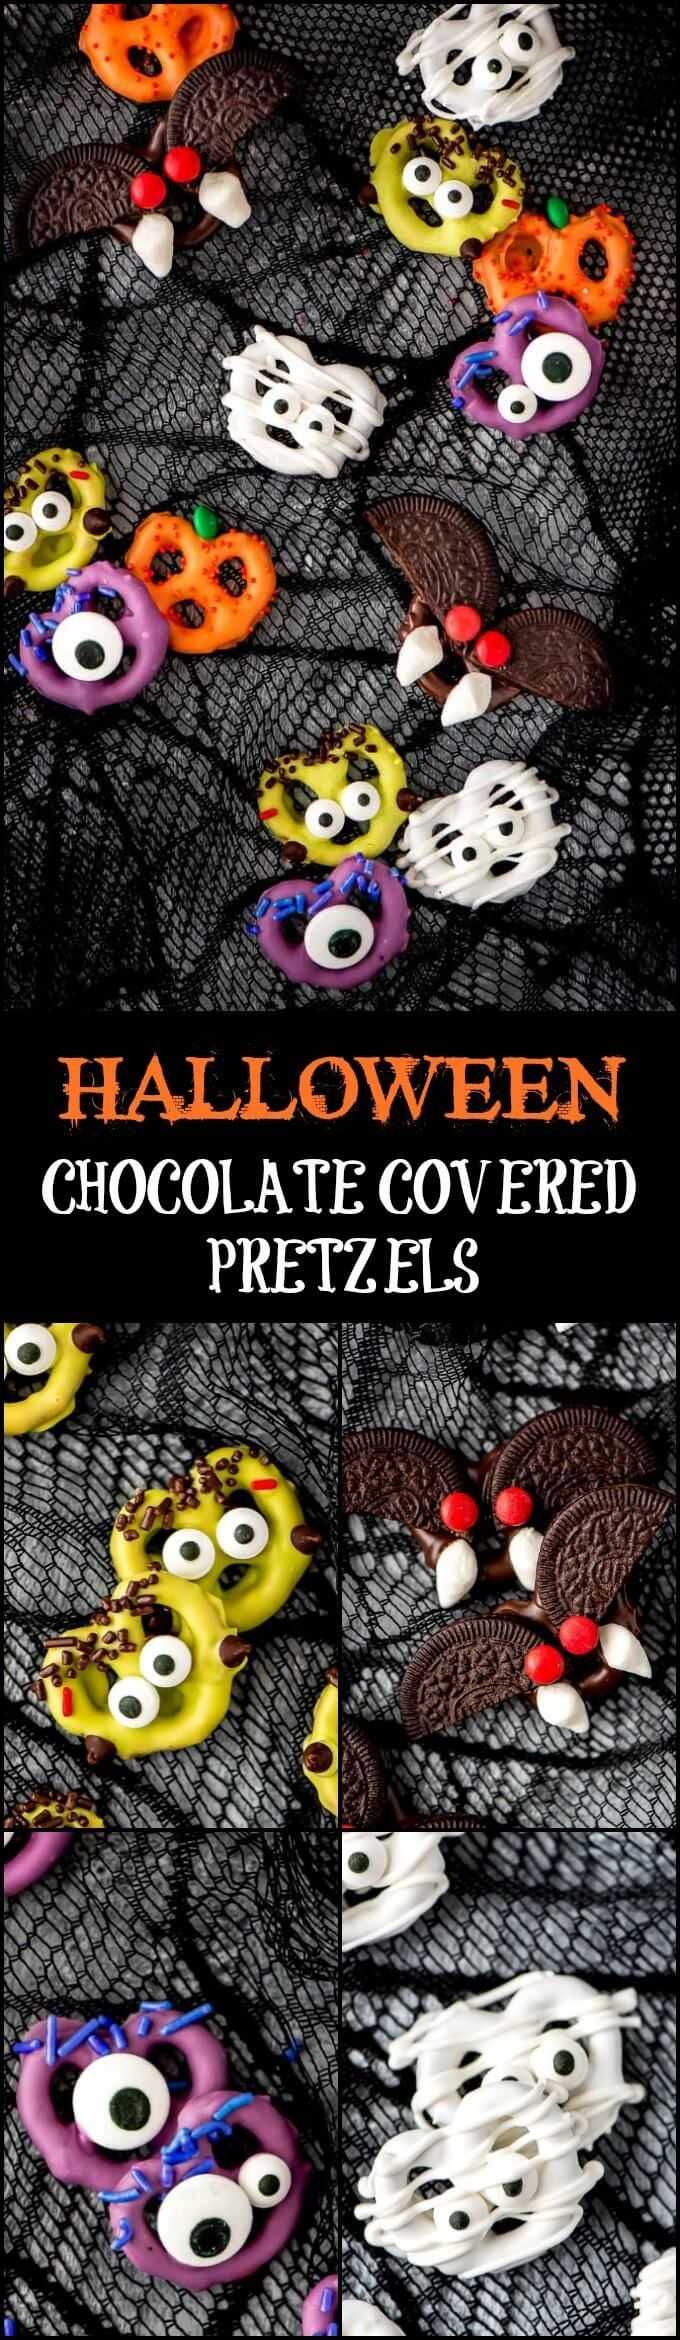 Halloween Chocolate Covered Pretzels are an easy treat to make and enjoy with the kids. Make bats, Frankenstein, mummies, pumpkins, monsters, or all!